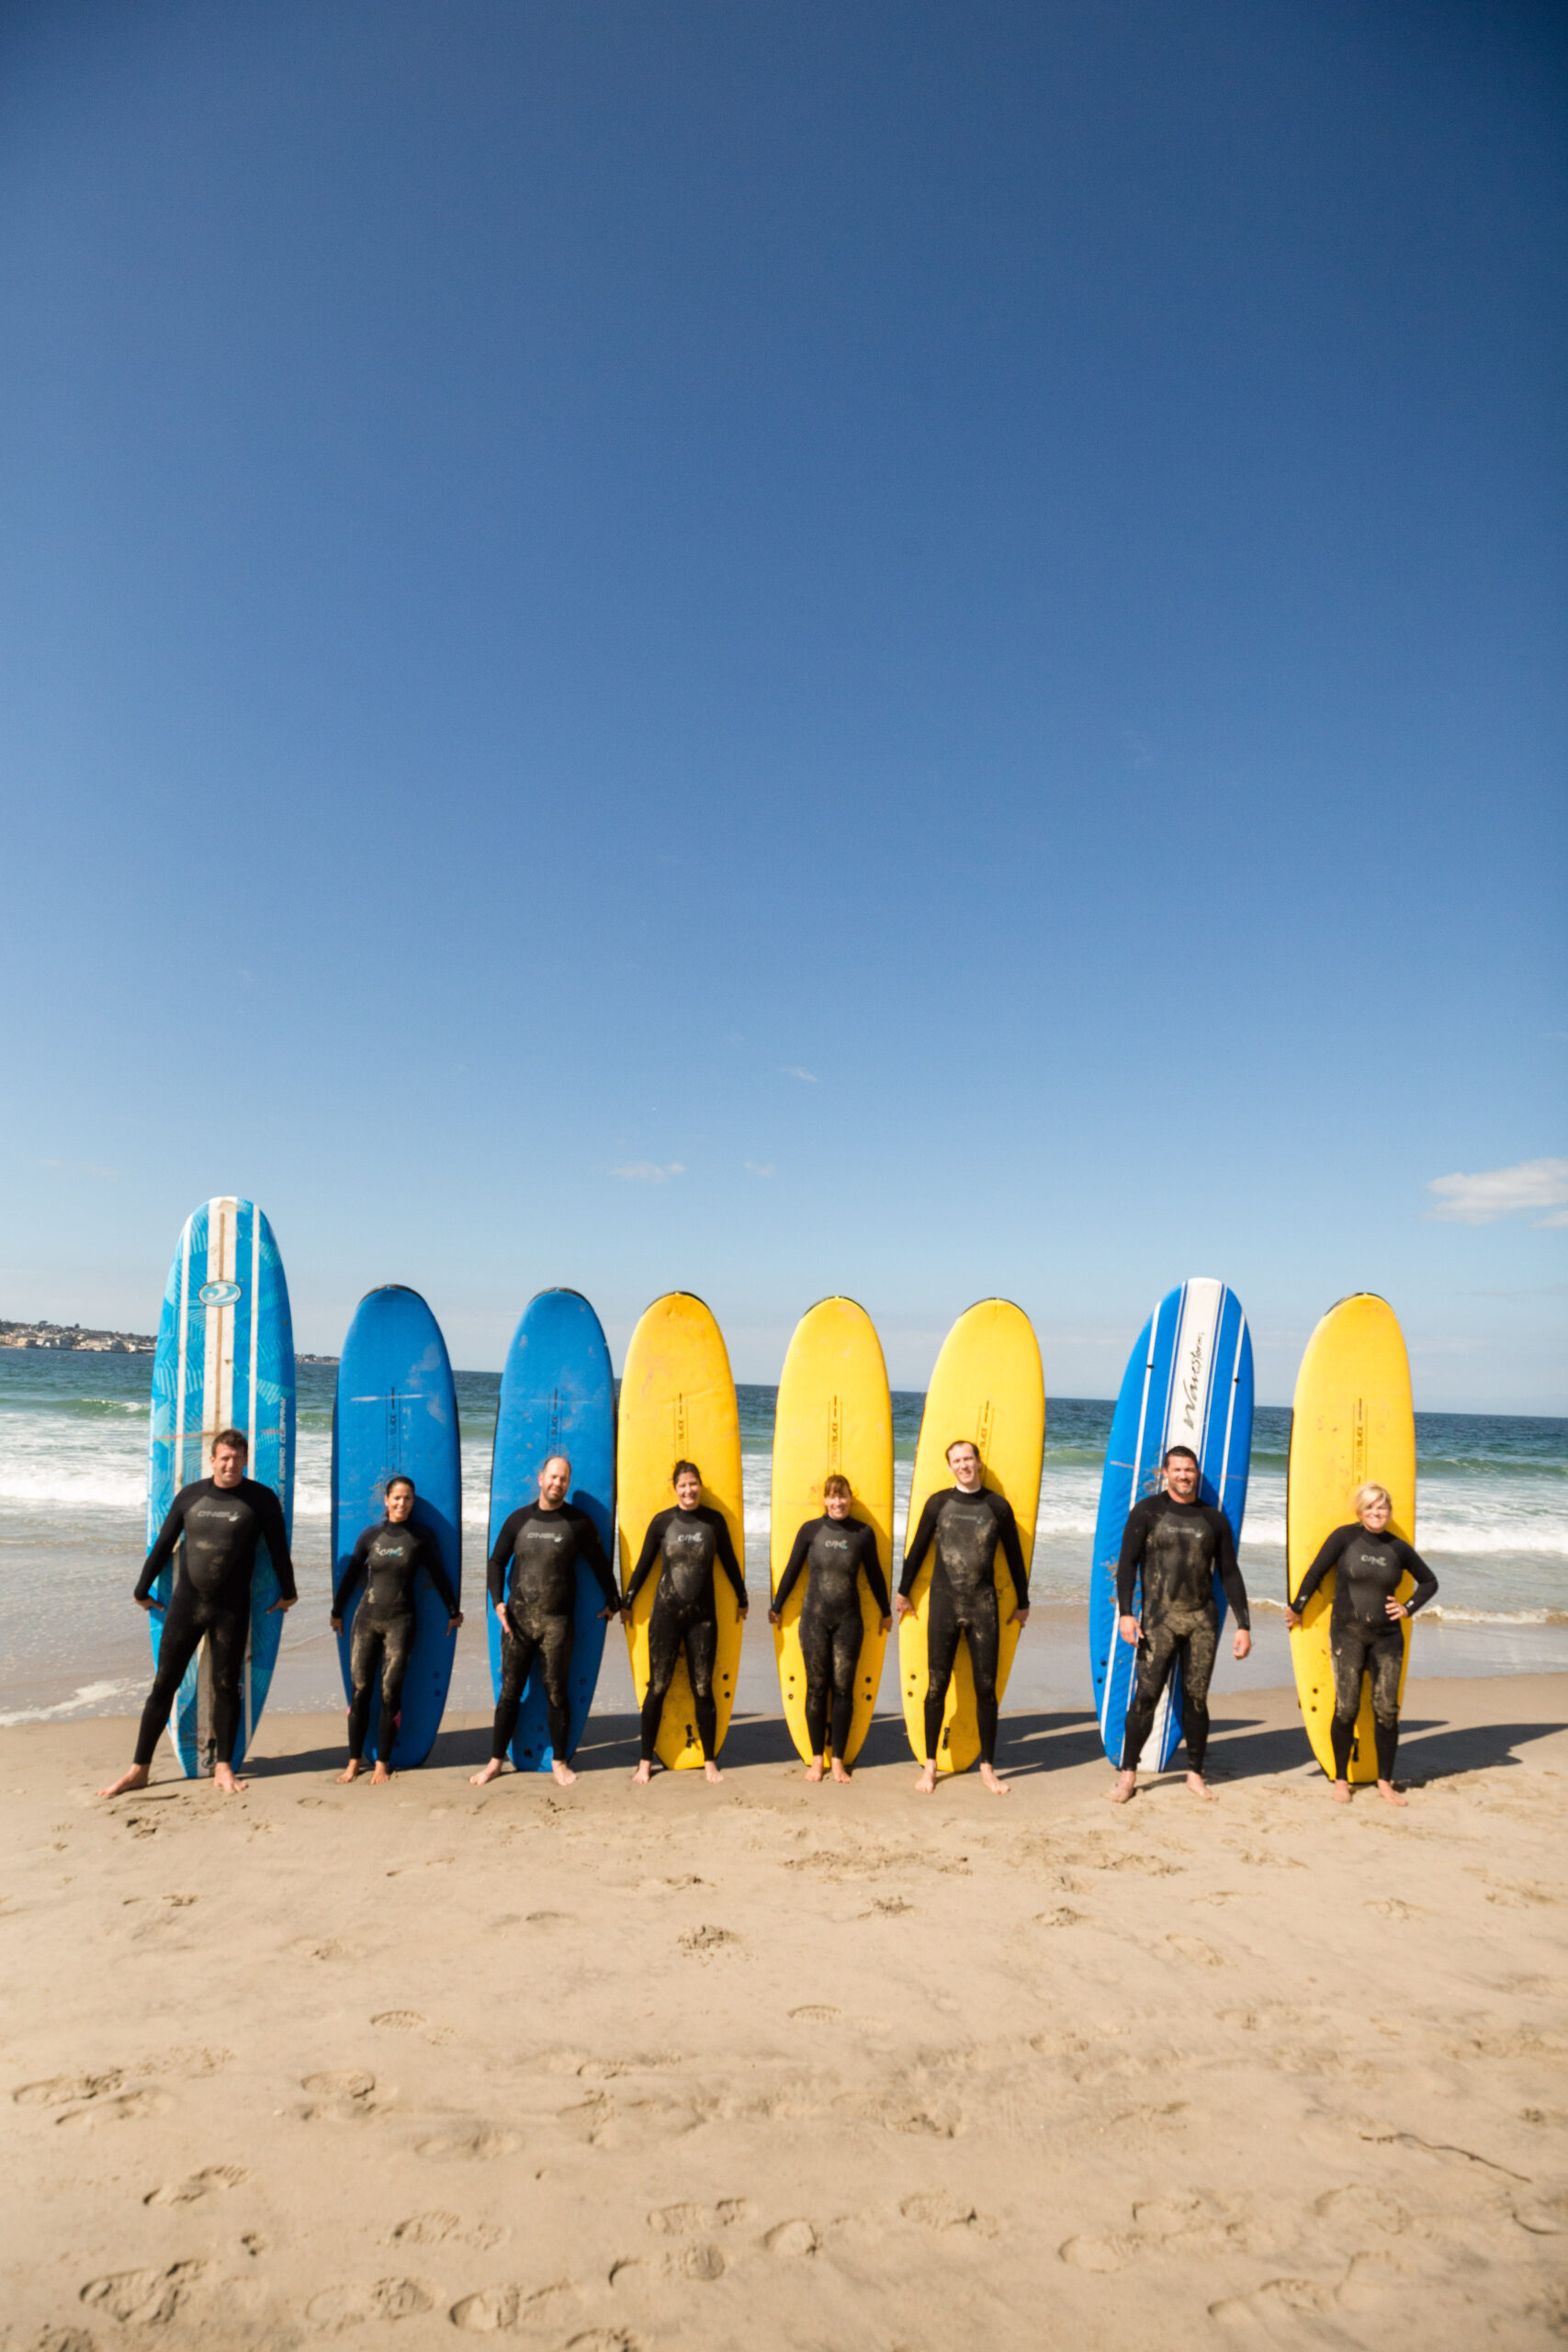 Incentive Group in Front of Surfboards